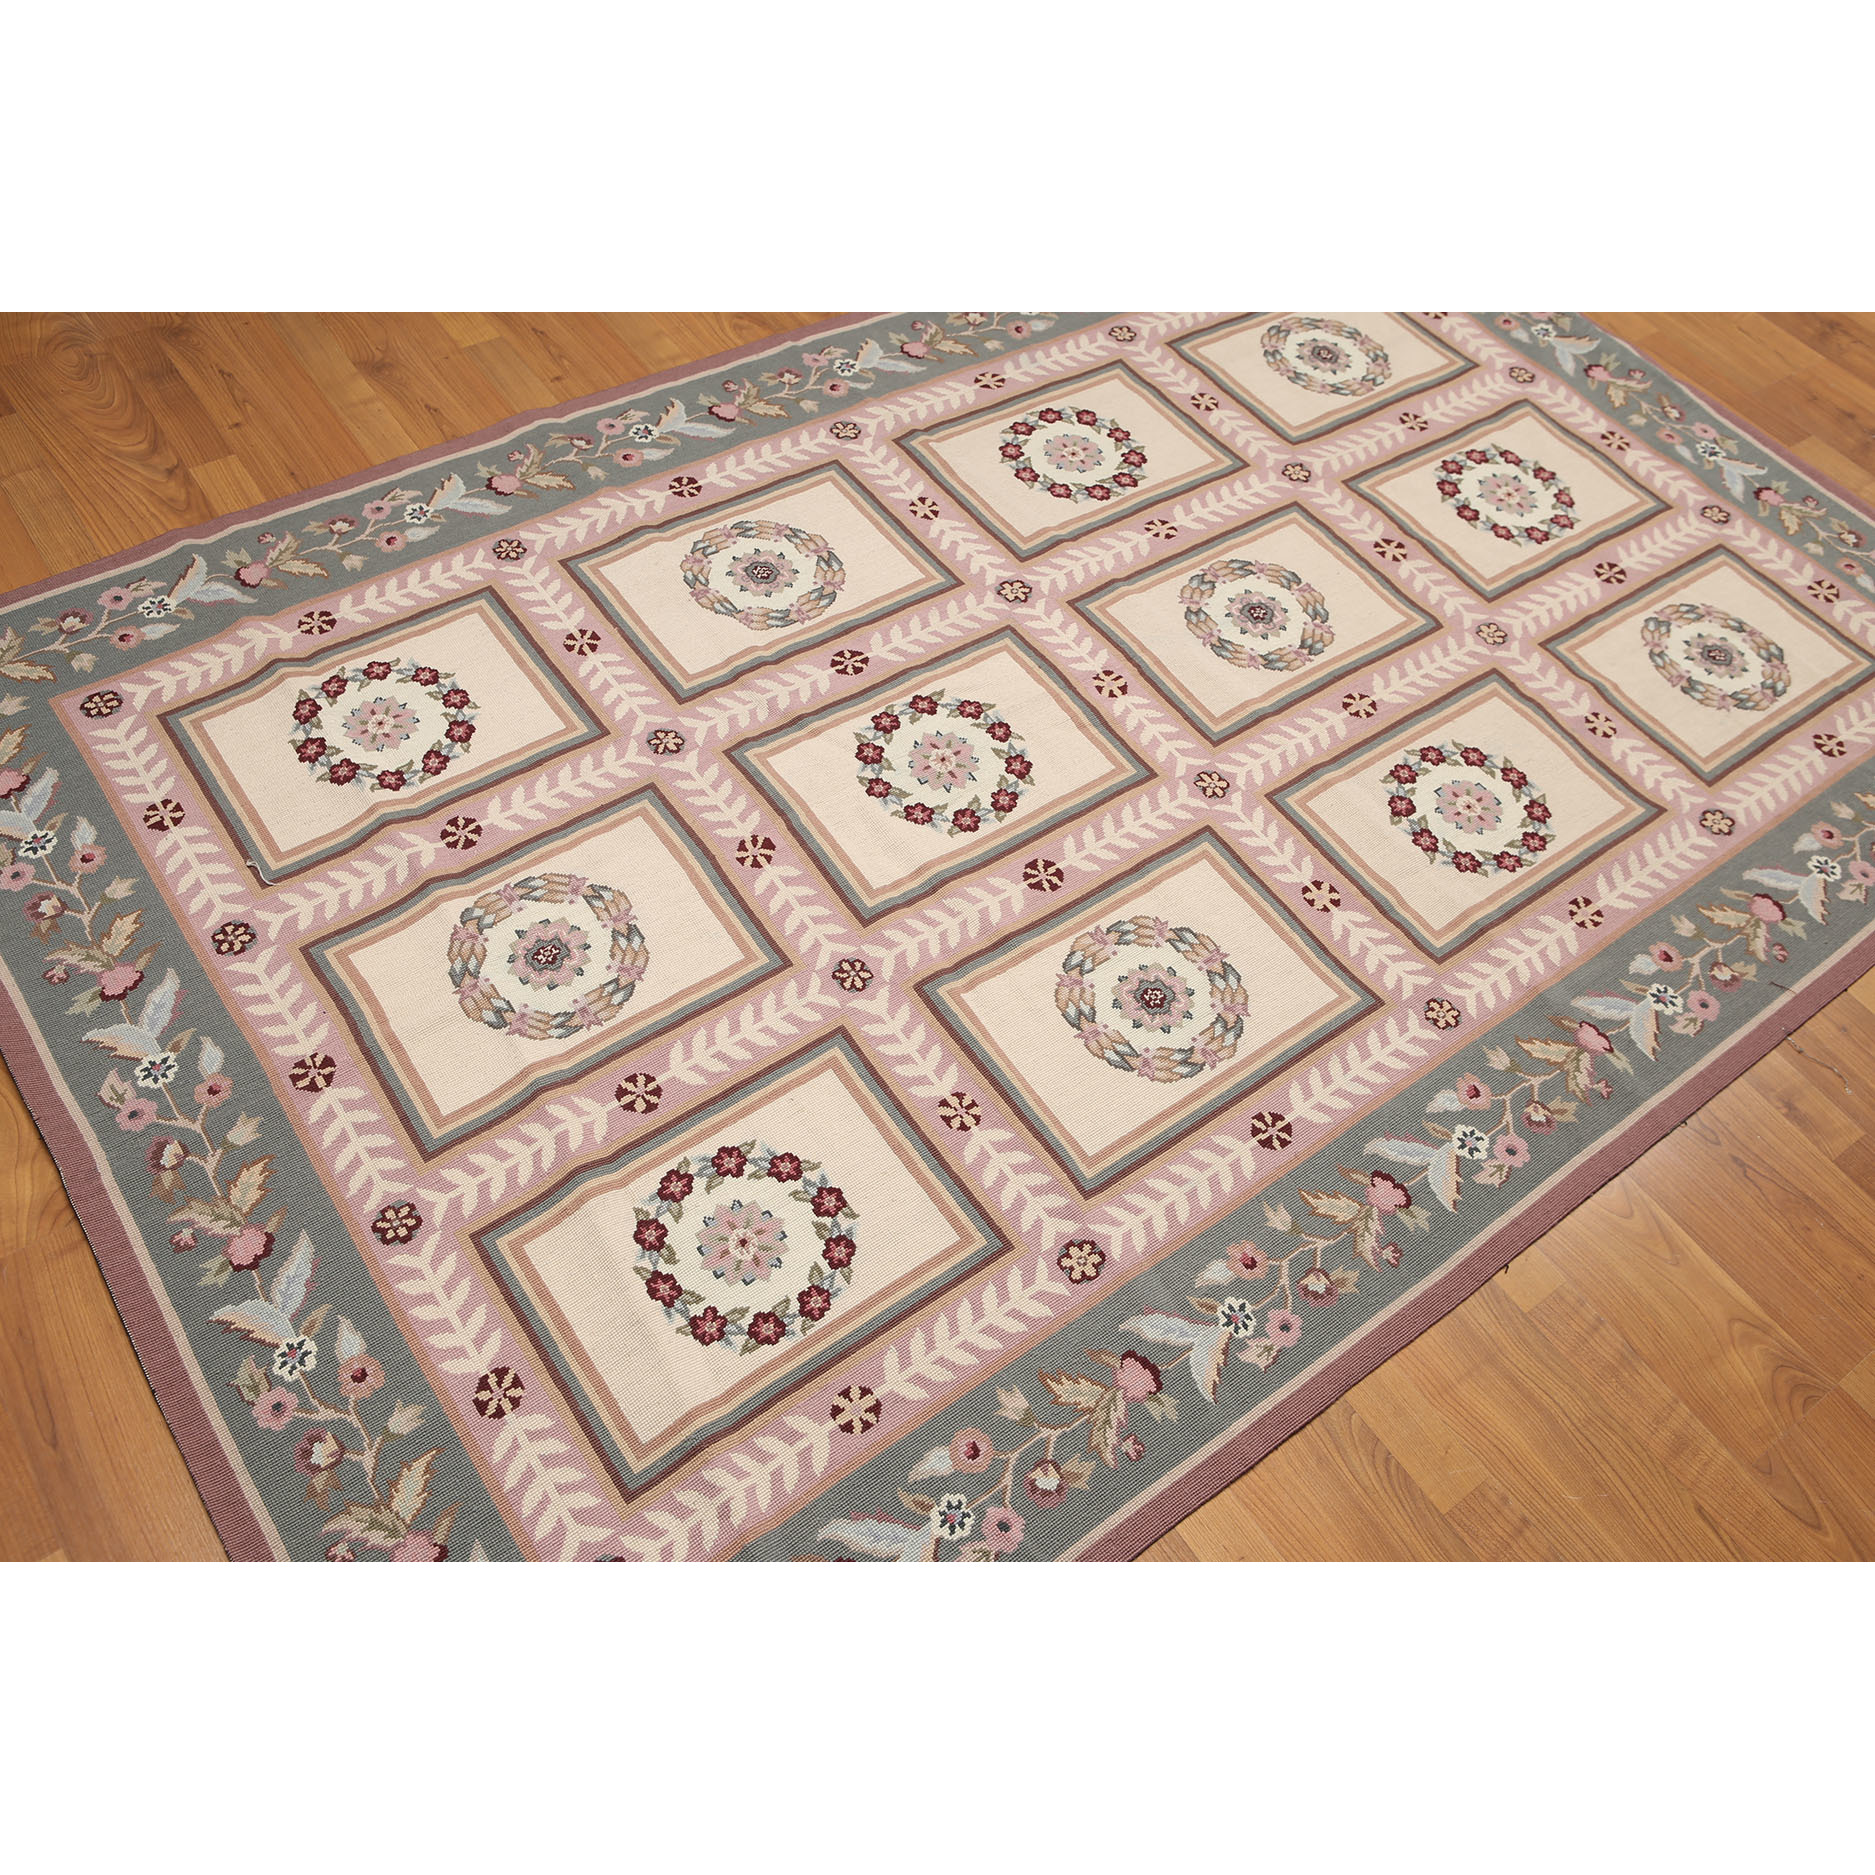 Aubusson Multicolor Wool Needlepoint French Country Area Rug 6 X 9 Free Shipping Today Com 23429119